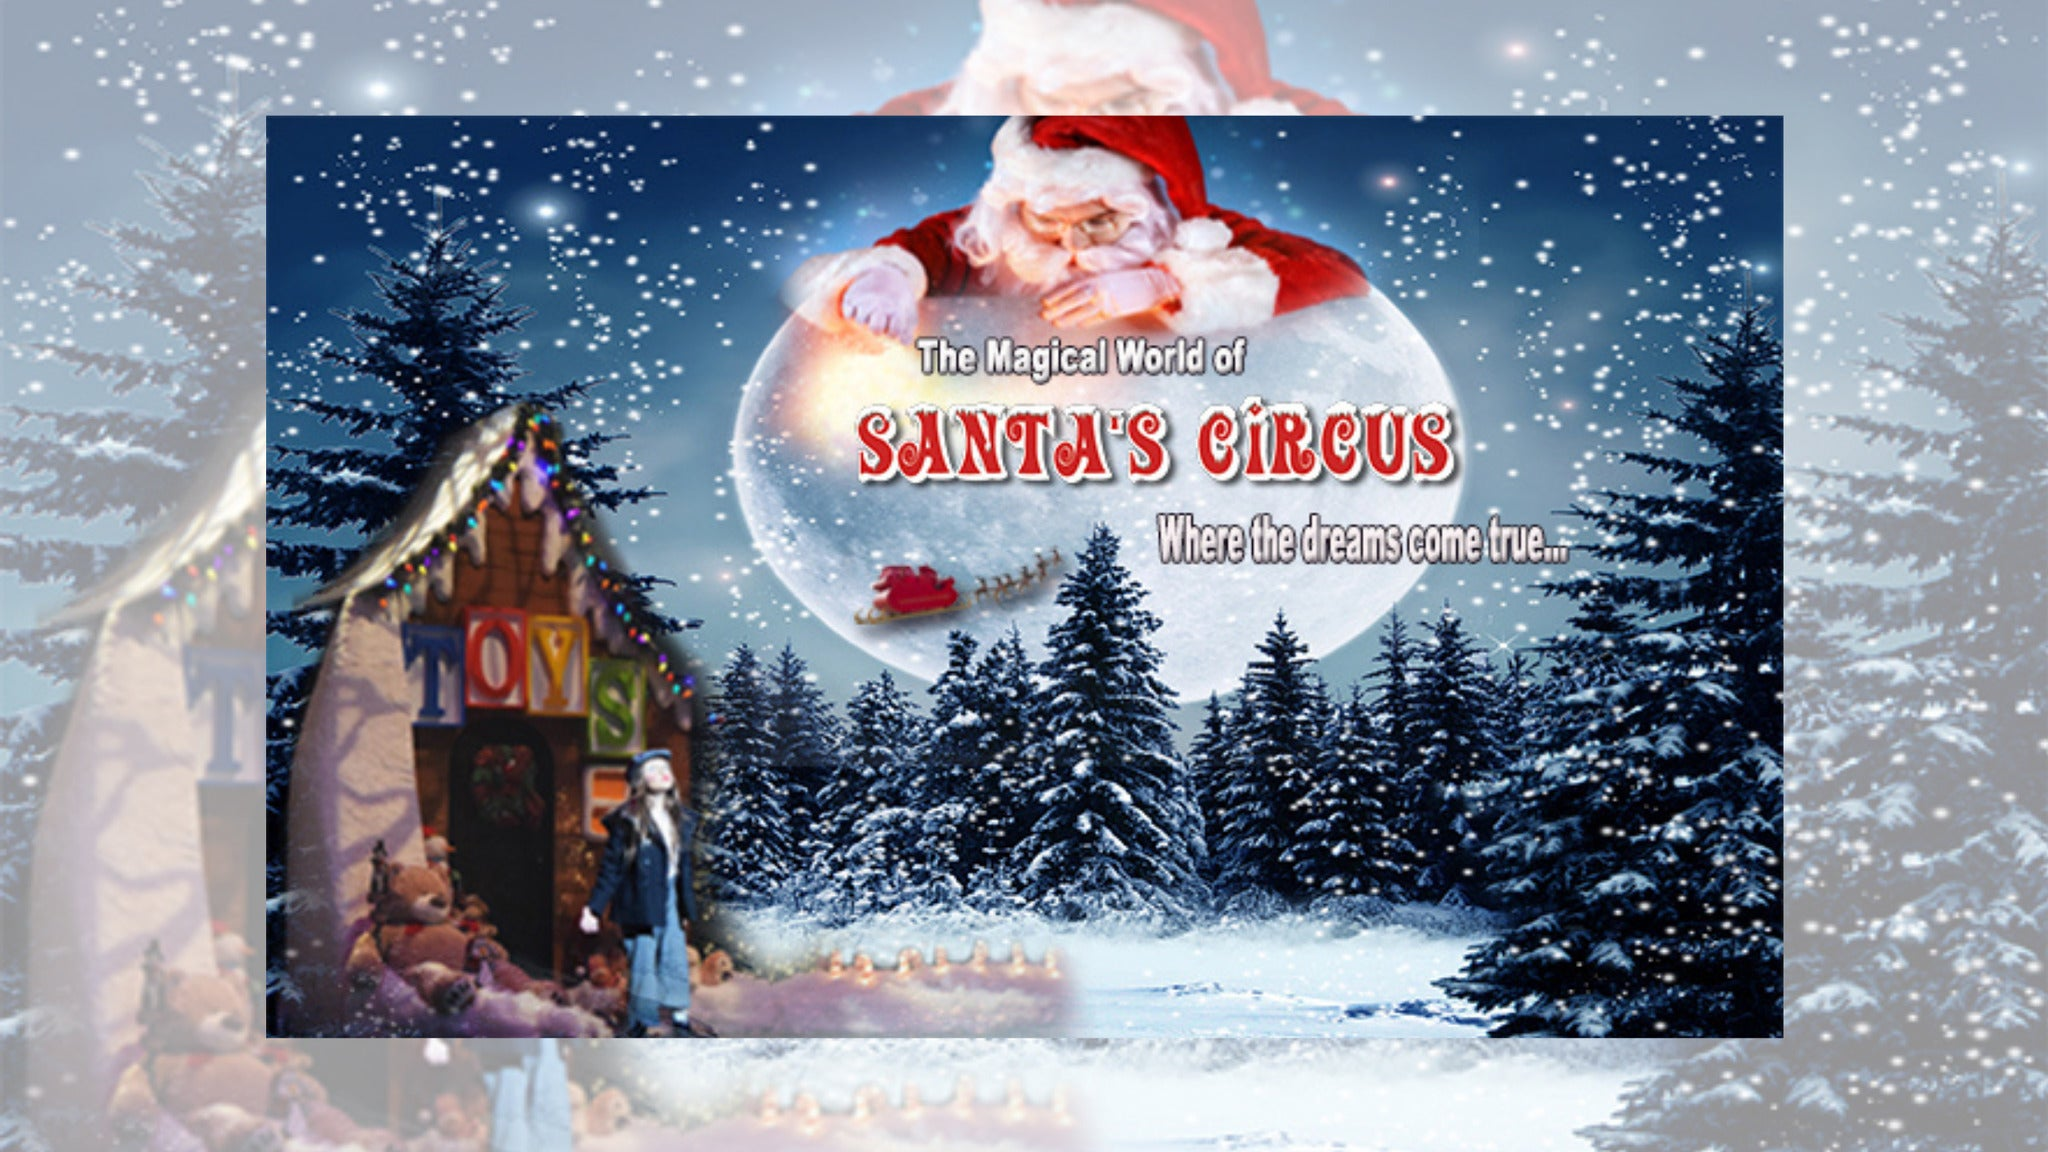 Image used with permission from Ticketmaster | Santas Circus tickets